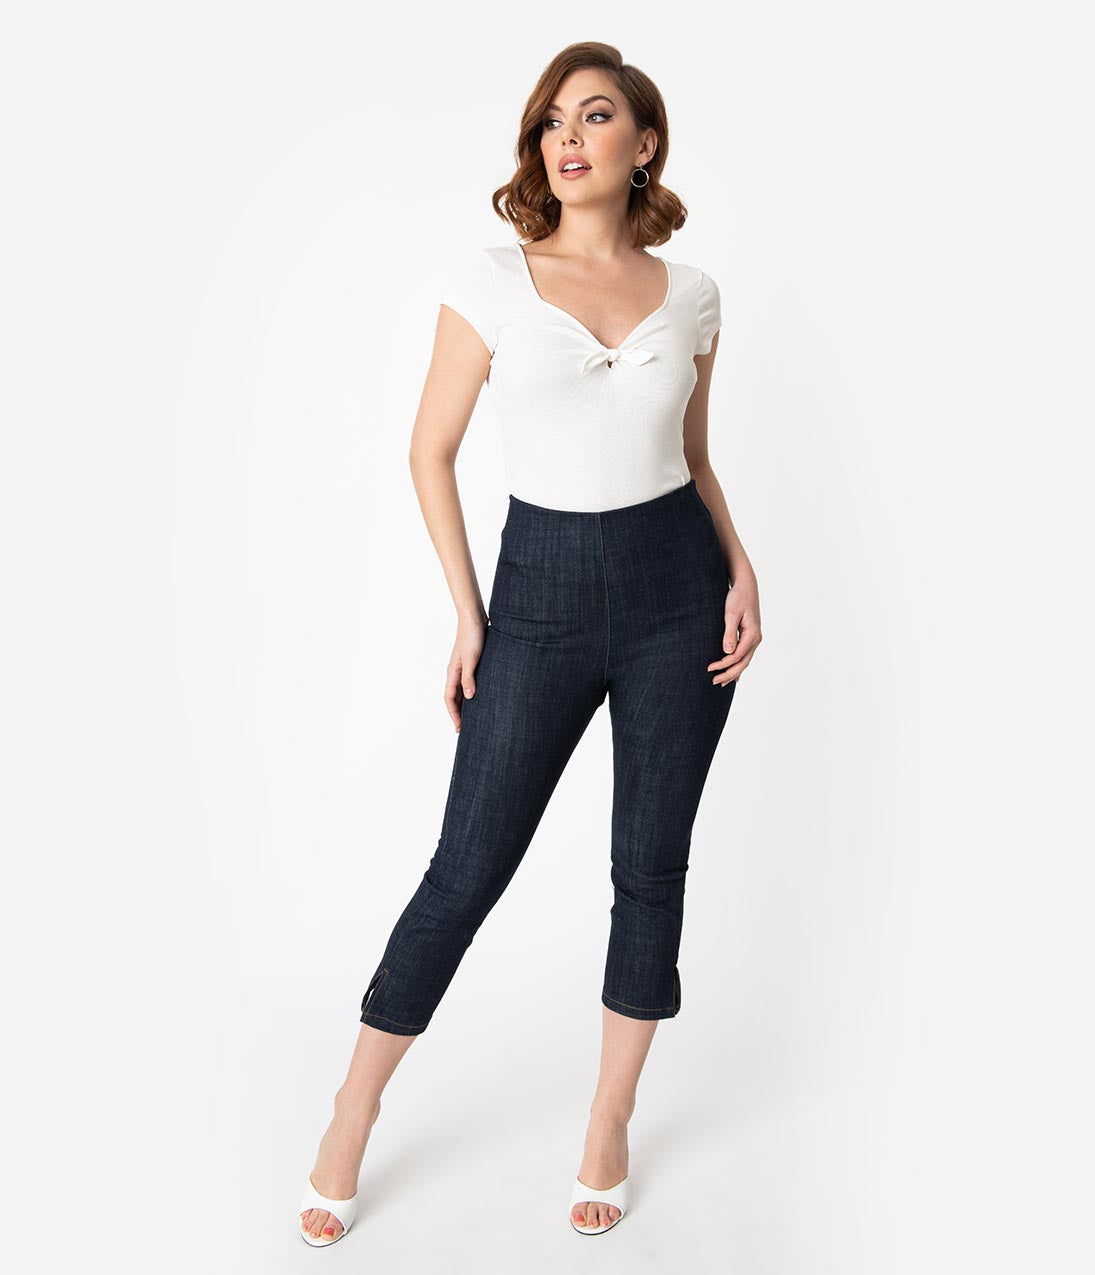 What Did Women Wear in the 1950s? 1950s Fashion Guide Unique Vintage Denim Blue High Waist Rachelle Capri Pants $58.00 AT vintagedancer.com